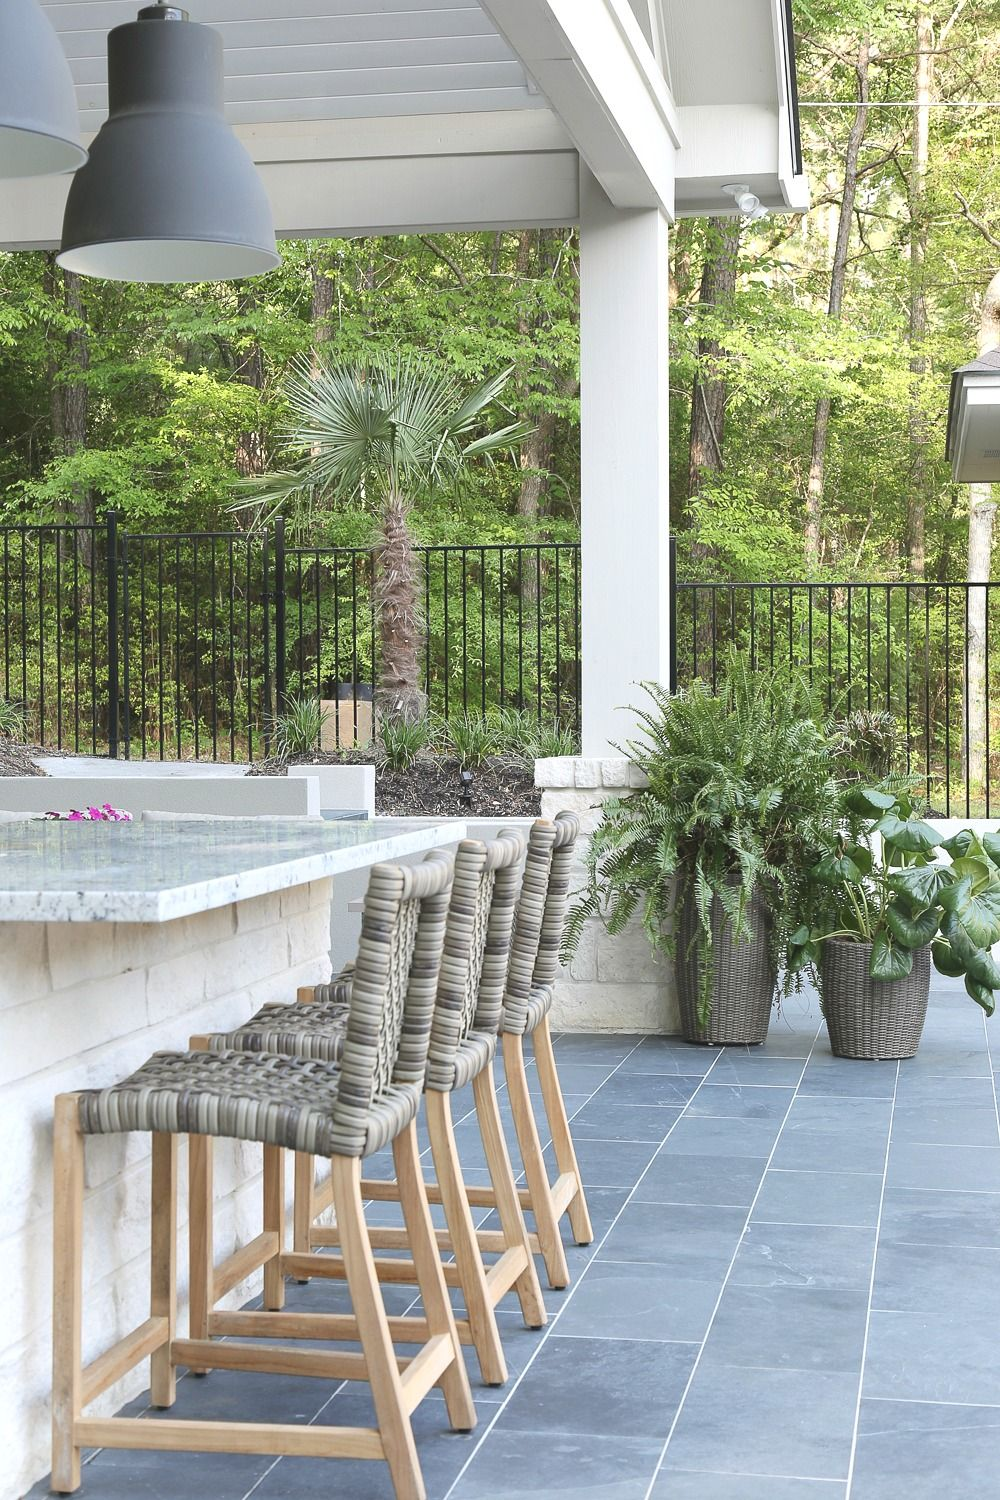 Outdoor Kitchen And Pool House Project Reveal Outdoor Kitchen Design Outdoor Tiles Outdoor Kitchen Design Layout